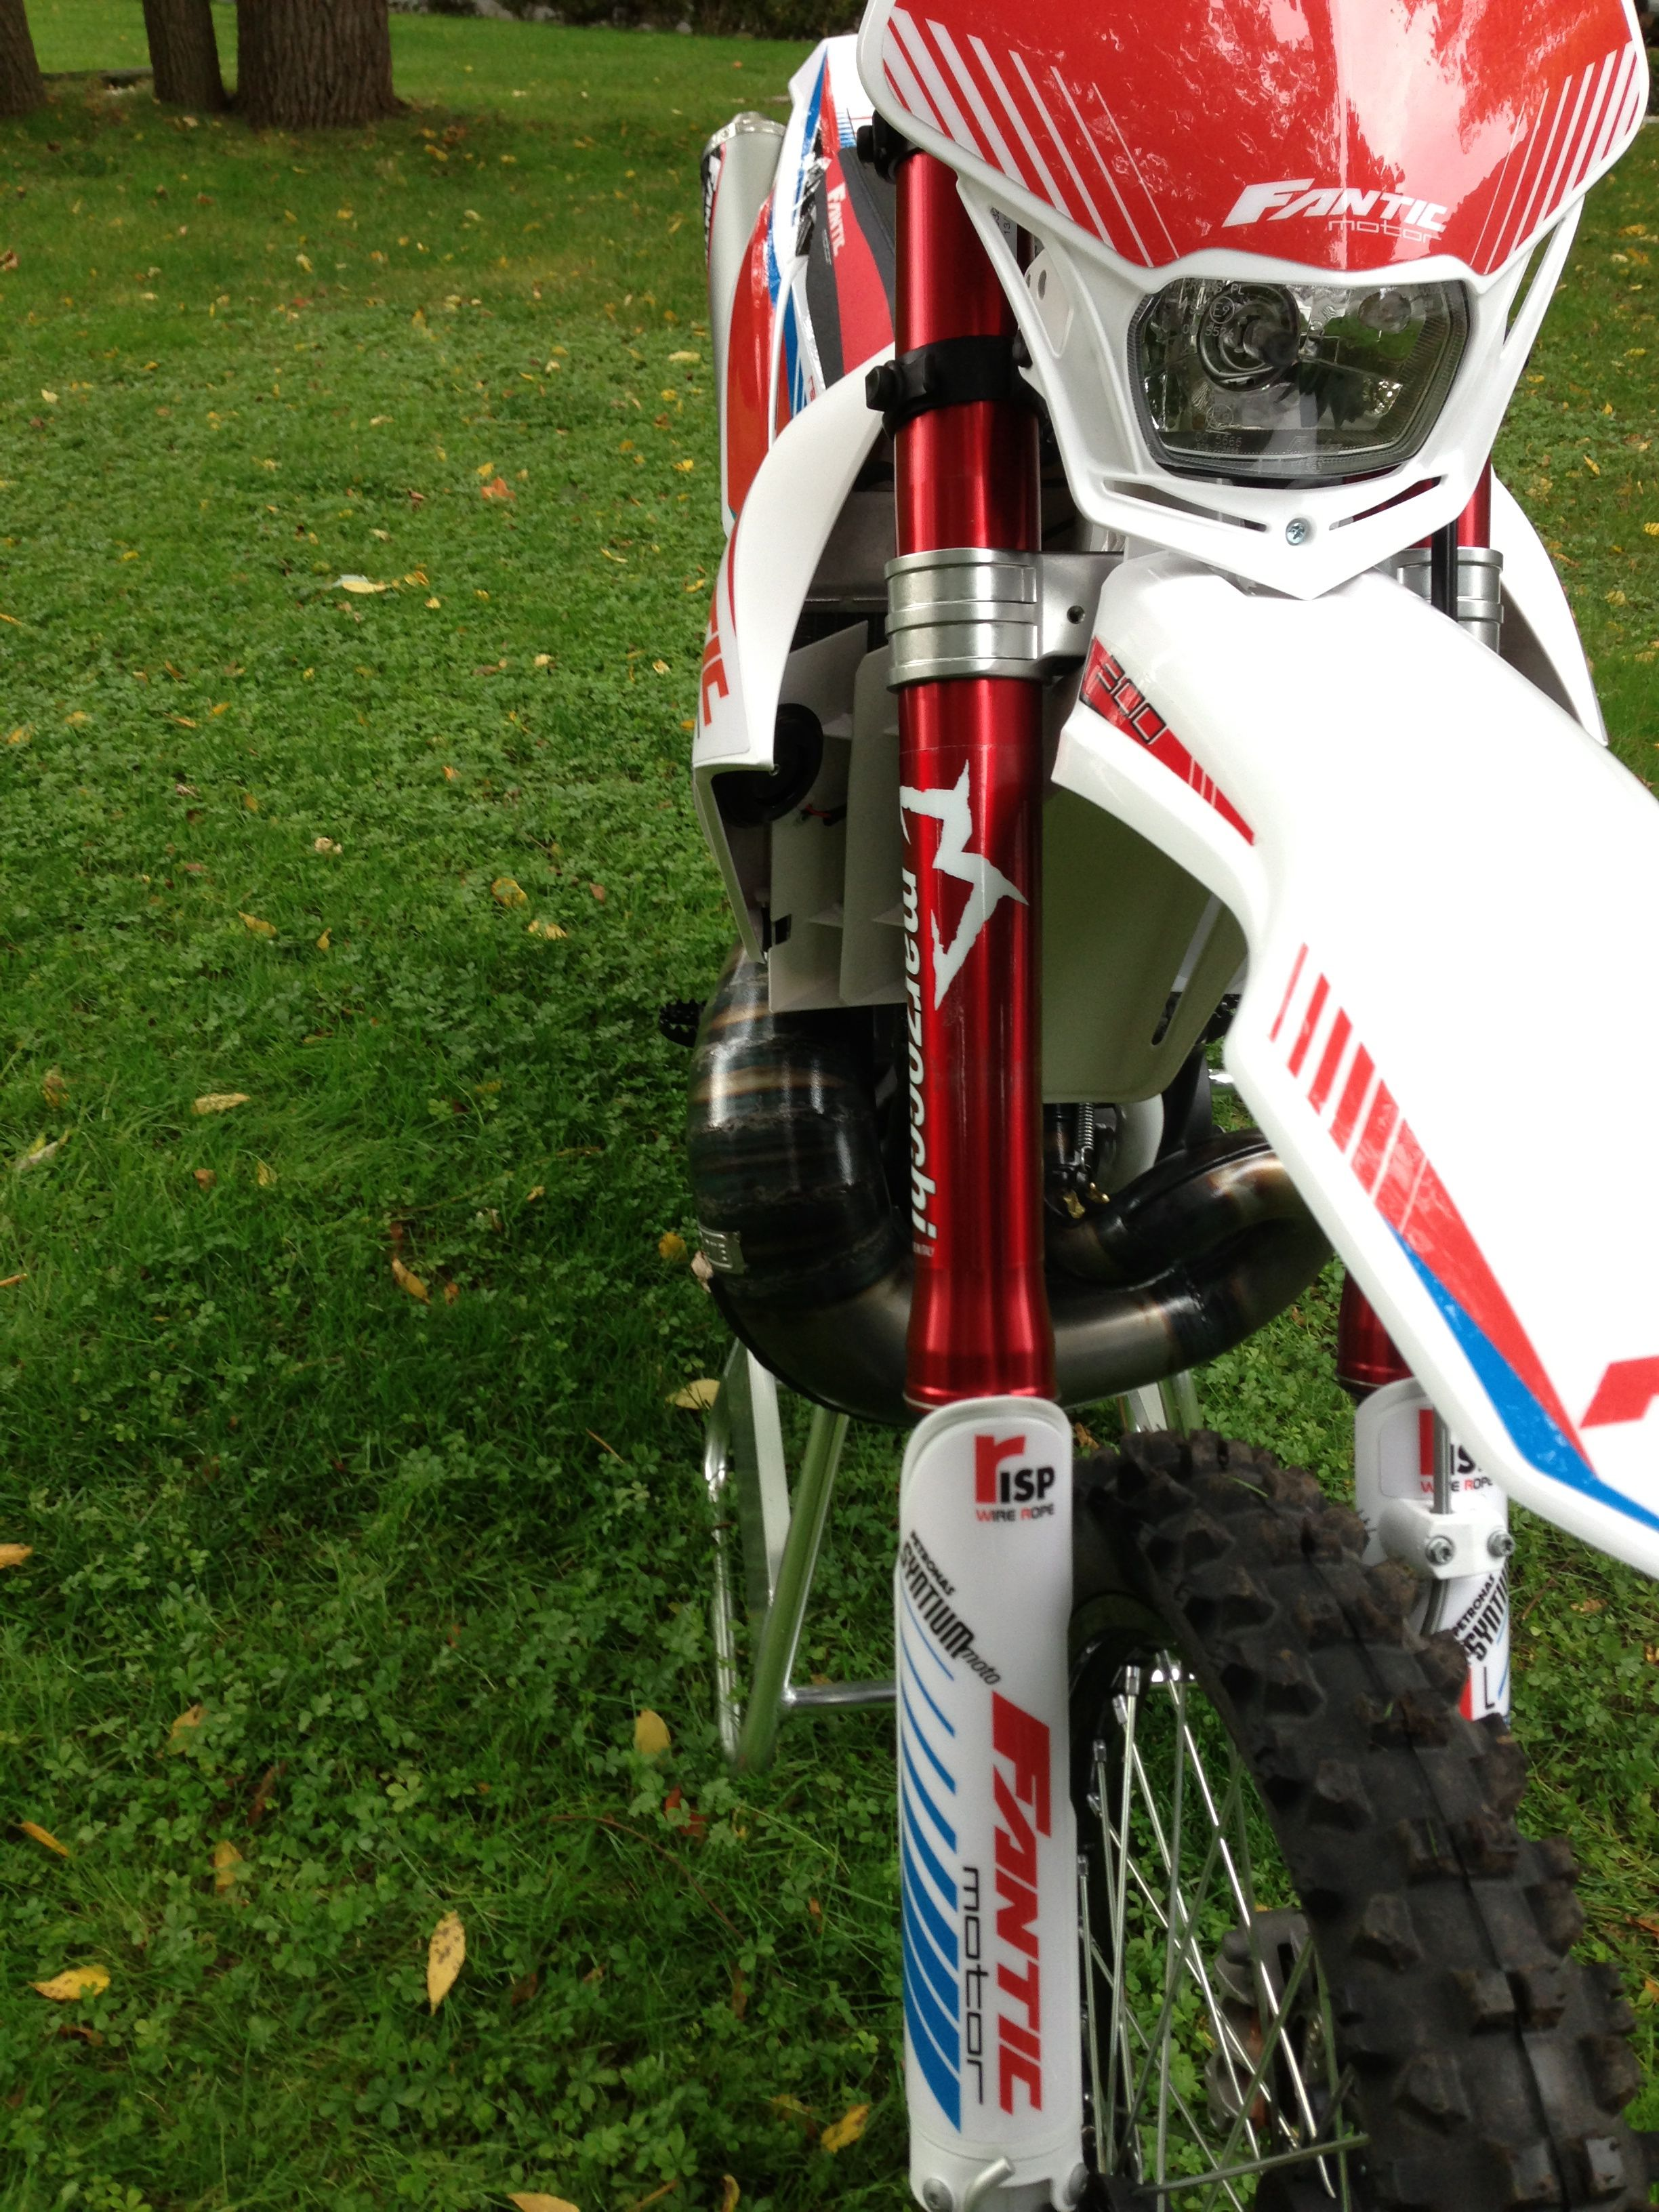 Fantic motorcycle 300 cc 2 stroke anodized forks with